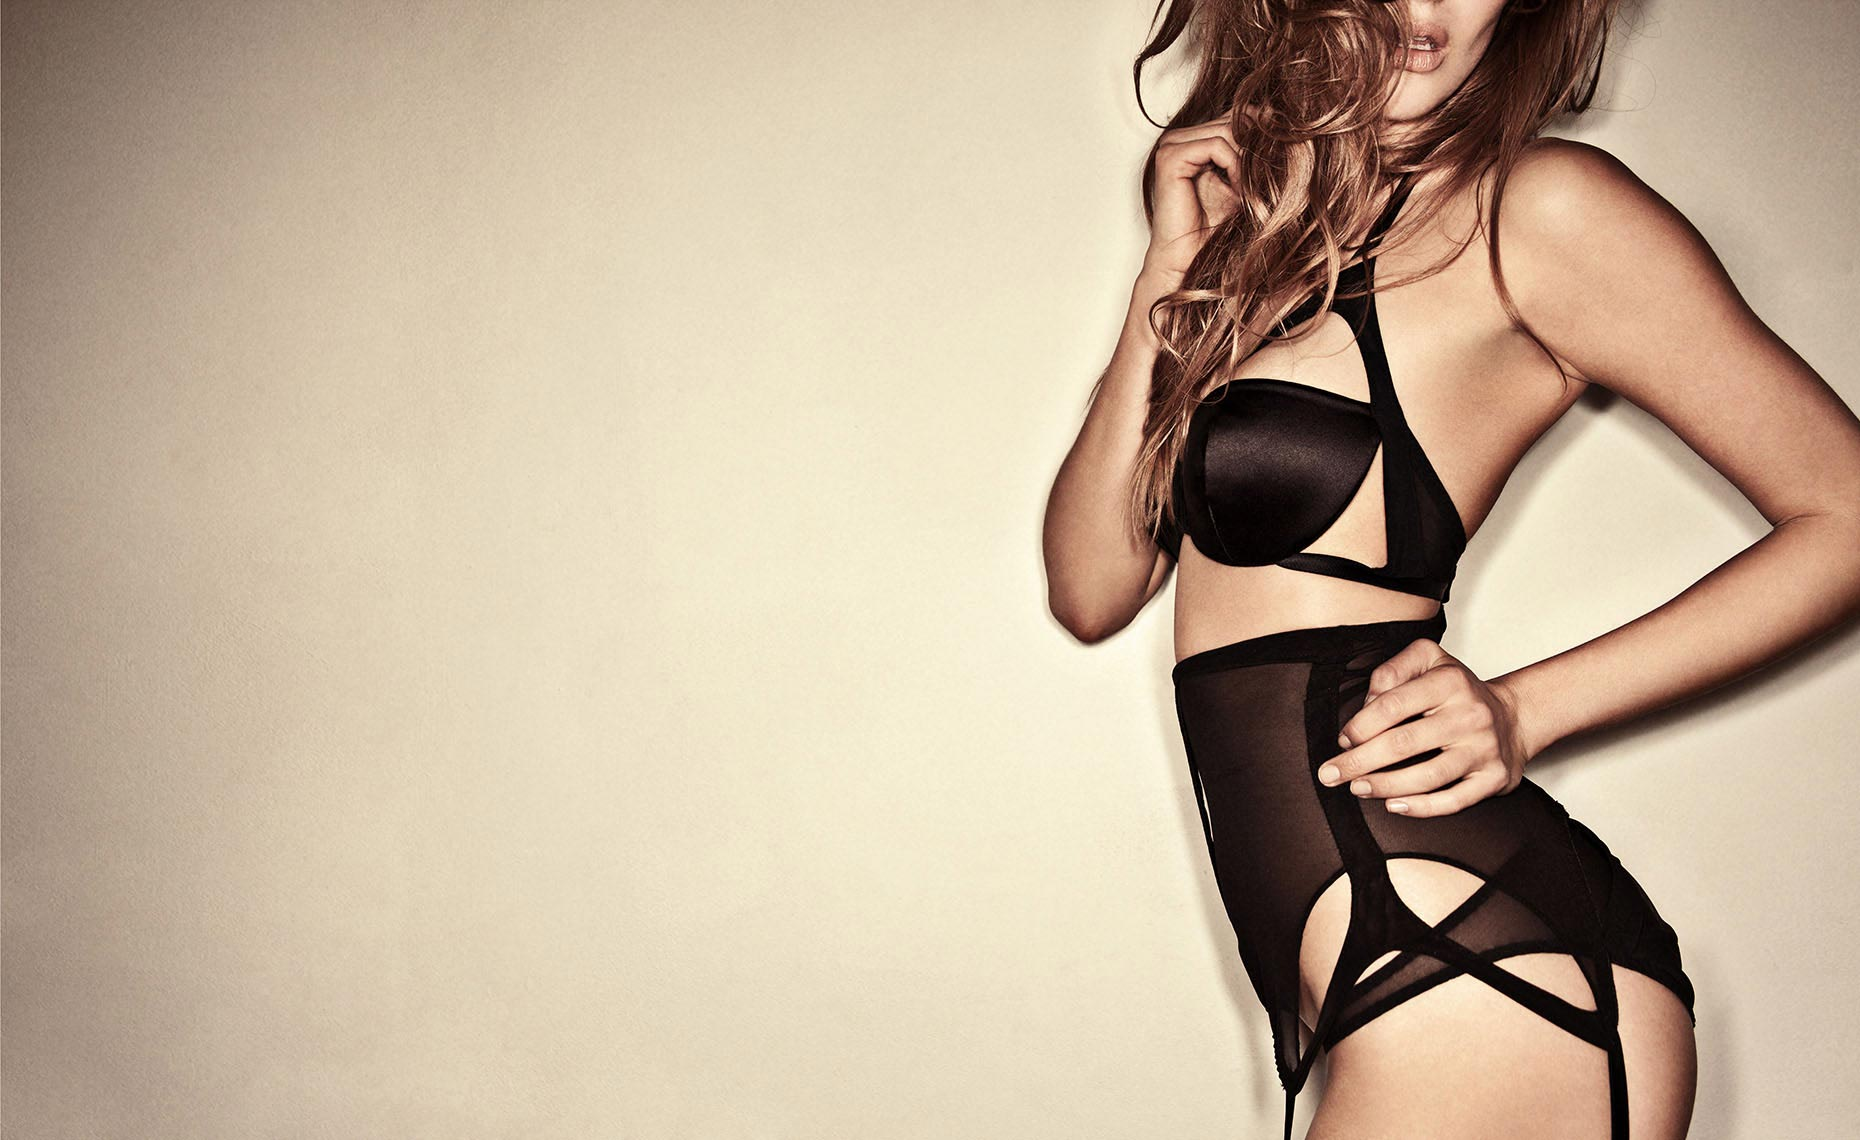 jameslightbown_london_lingerie_photographer_lascivious_013